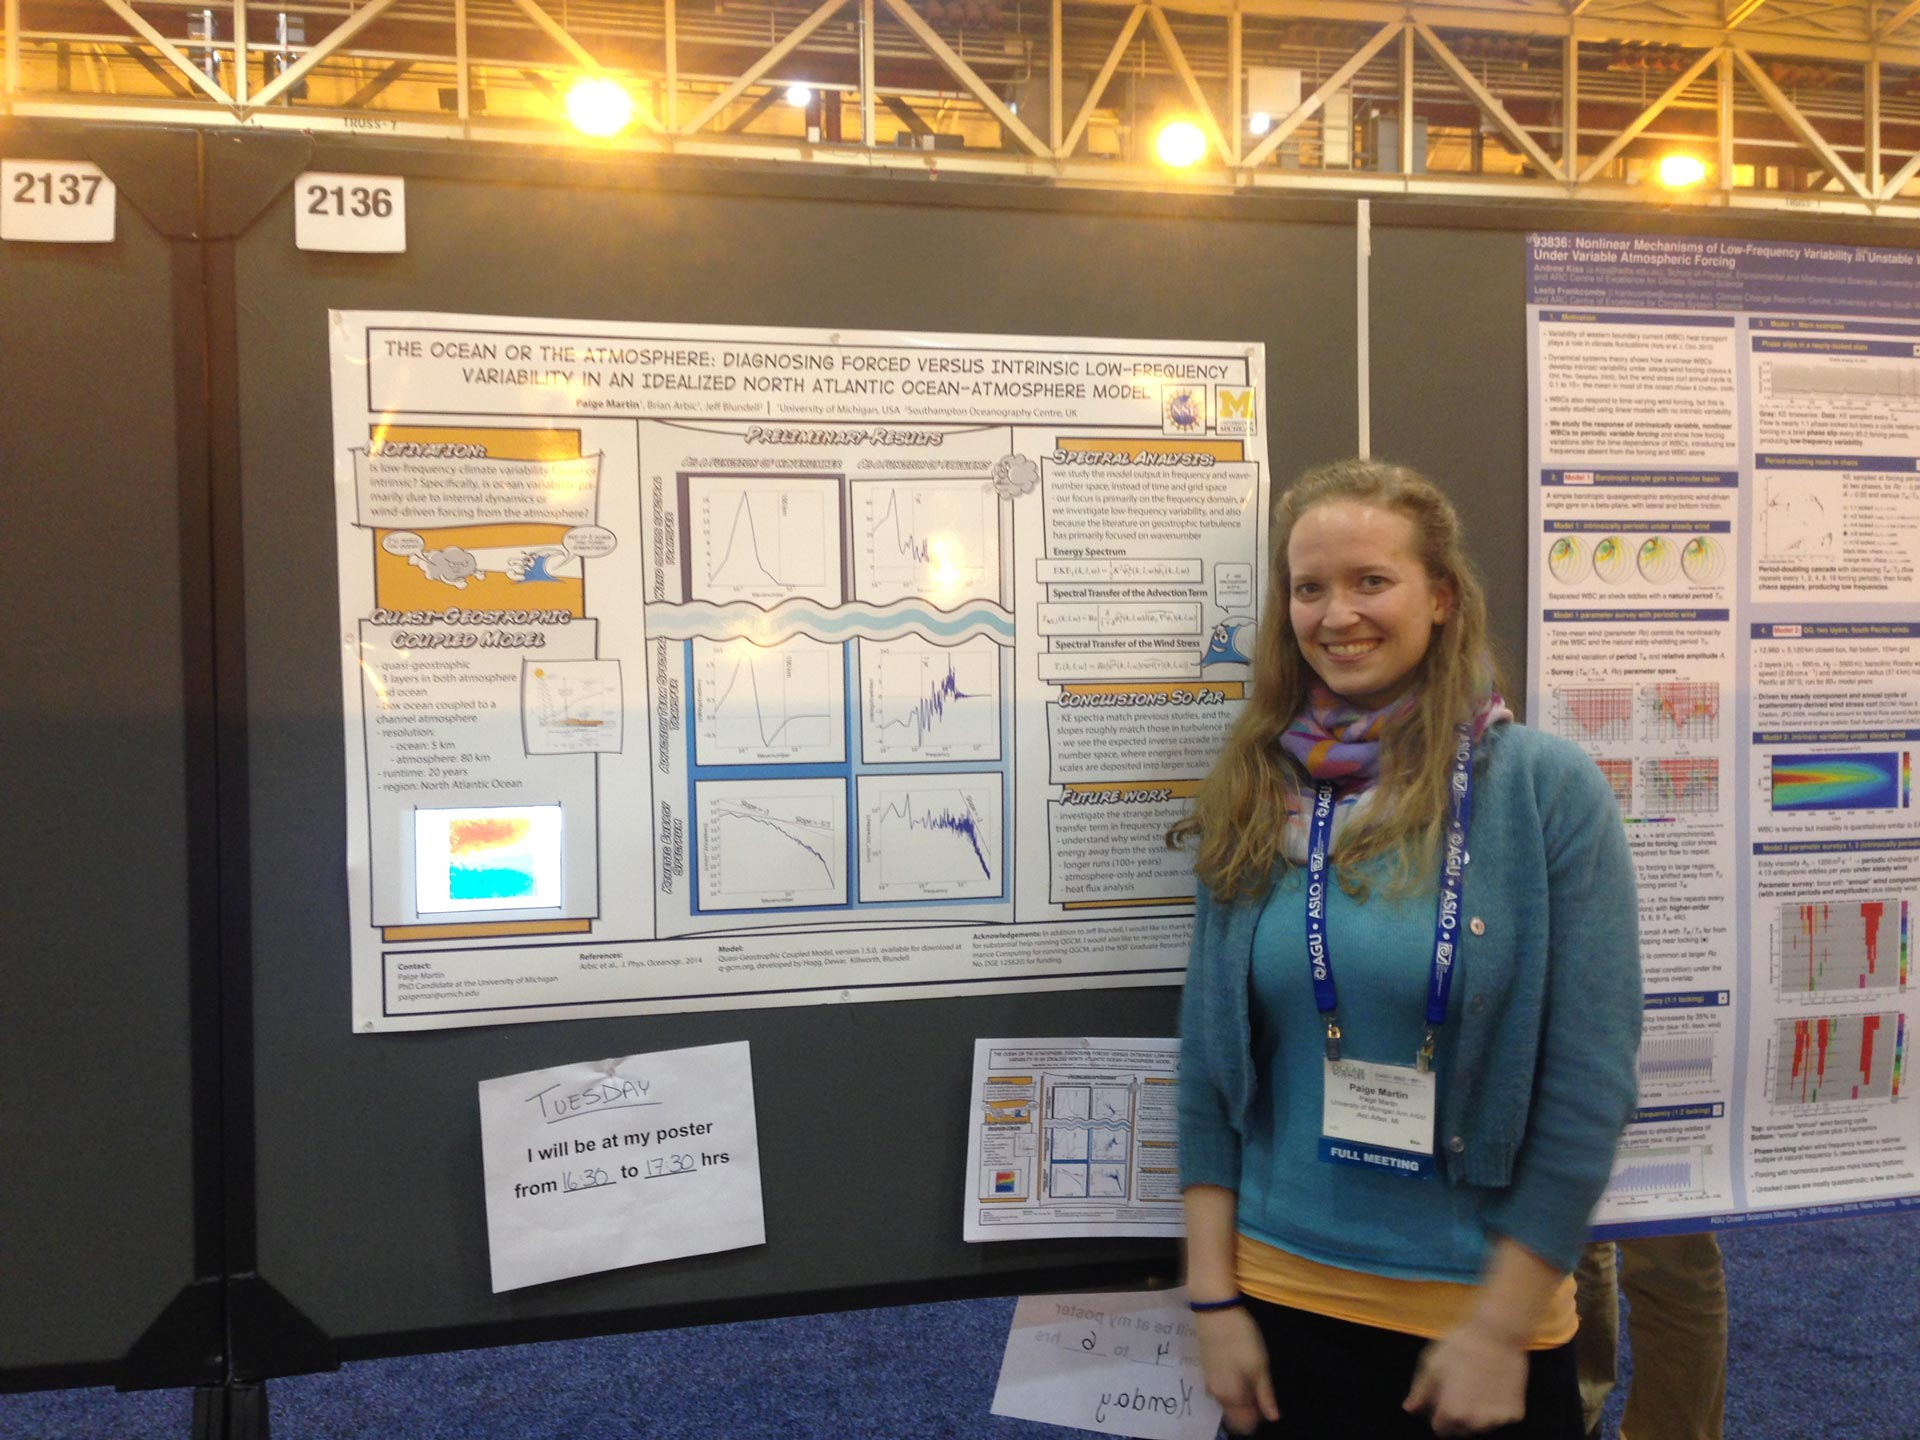 Paige Martin giving her poster at Ocean Sciences meeting